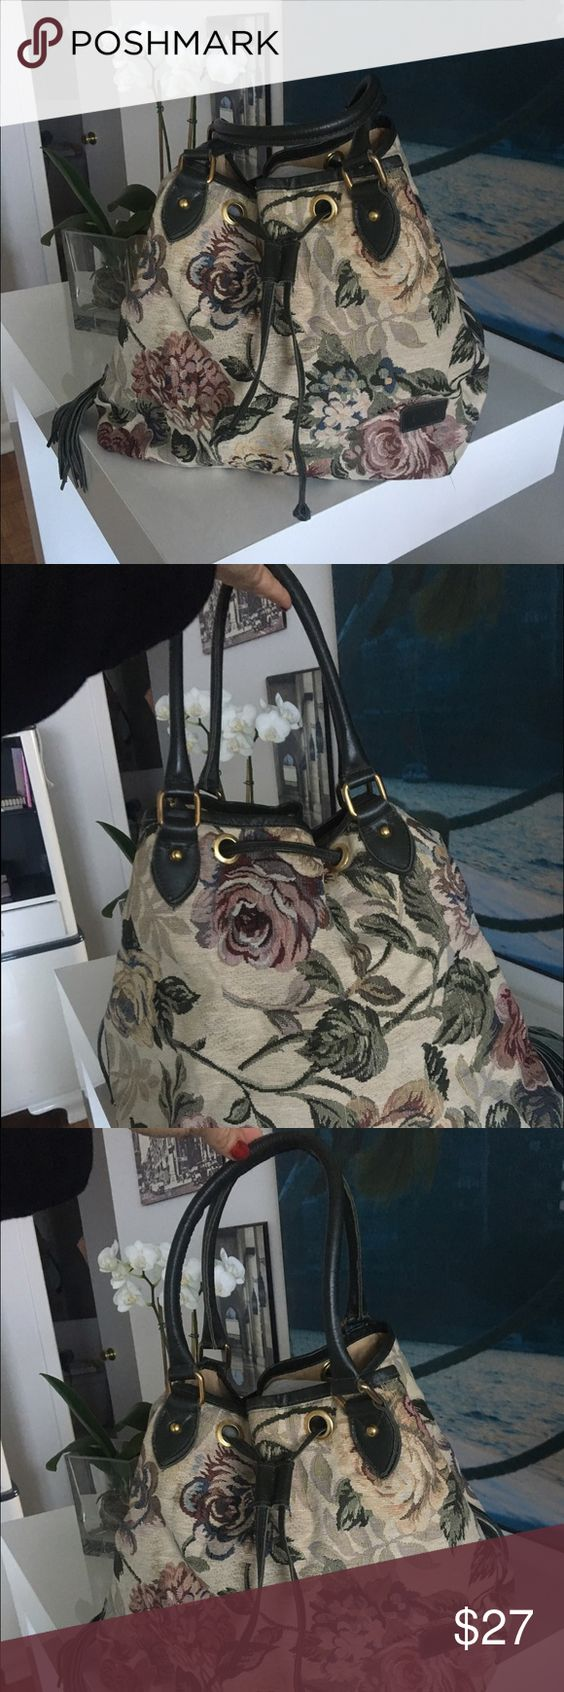 Floral Ghezy Bag handbag The bag is used but still in good conditions Ghezy Bag Bags Shoulder Bags